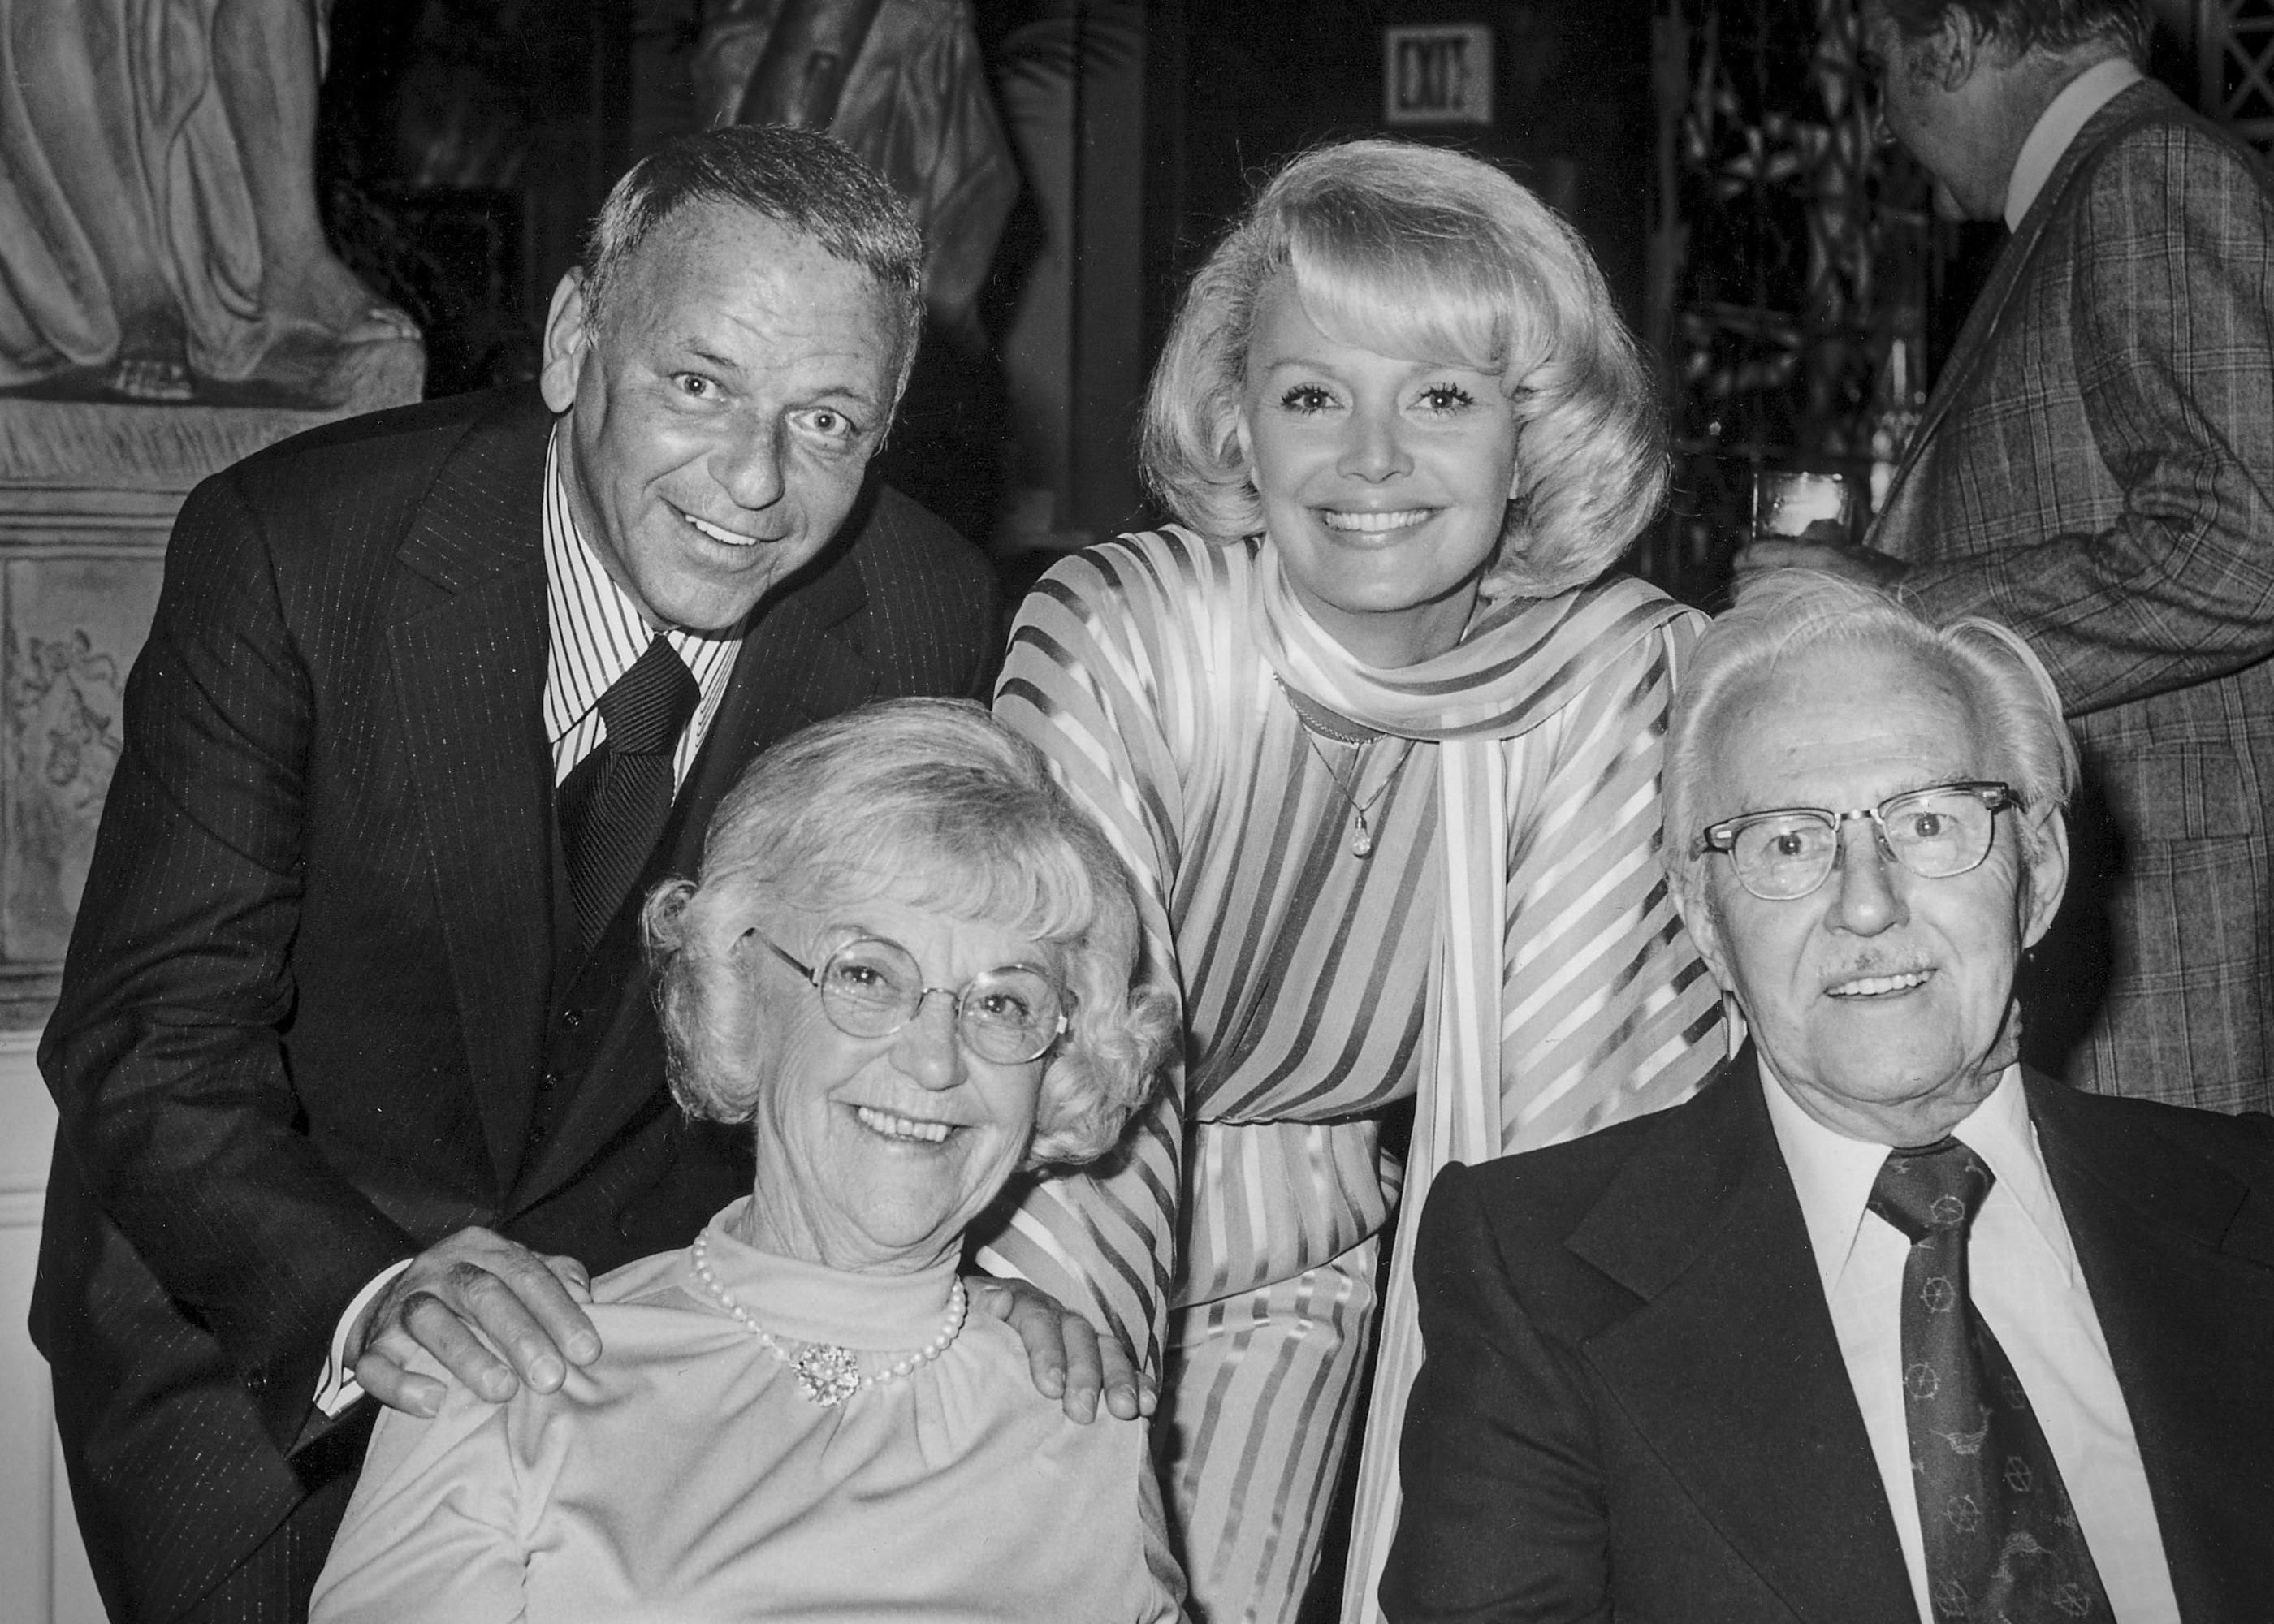 Frank Sinatra, top left, and Barbara Sinatra, top right, pose with others at Caesars Palace in Las Vegas on May 23, 1976. Barbara Sinatra, the wife of late-singer Frank Sinatra, died Tuesday morning at her Rancho Mirage, Calif., home, a family spokesman announced. (CREDIT: Las Vegas News Bureau)